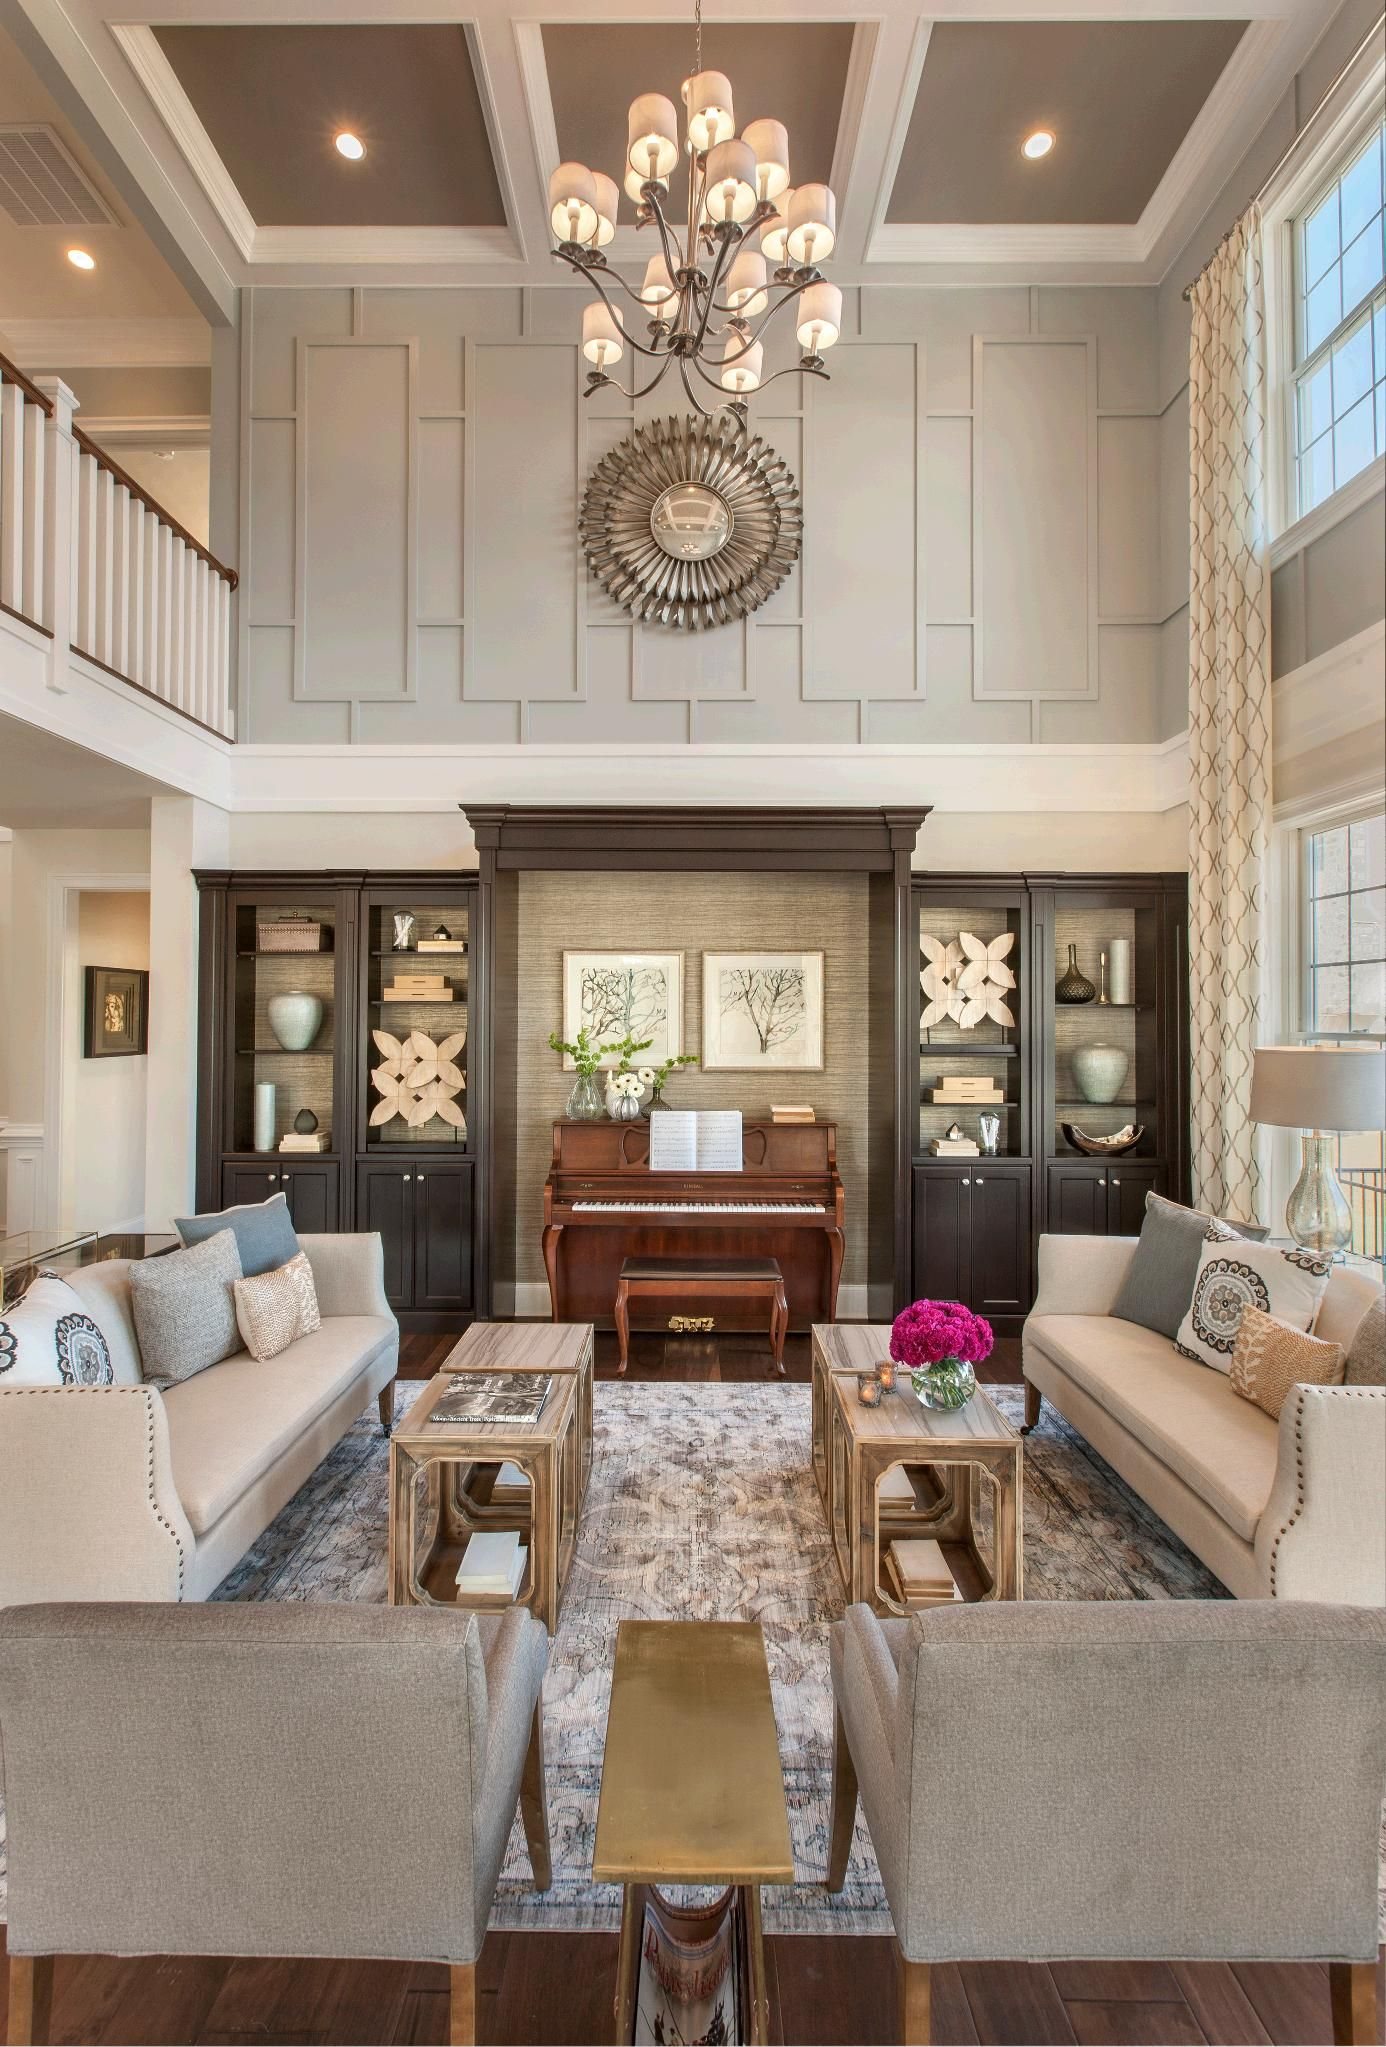 New Luxury Homes For Sale In Newtown Square Pa Liseter The Merion Collection High Ceiling Living Room Classic Living Room Design Family Room Design